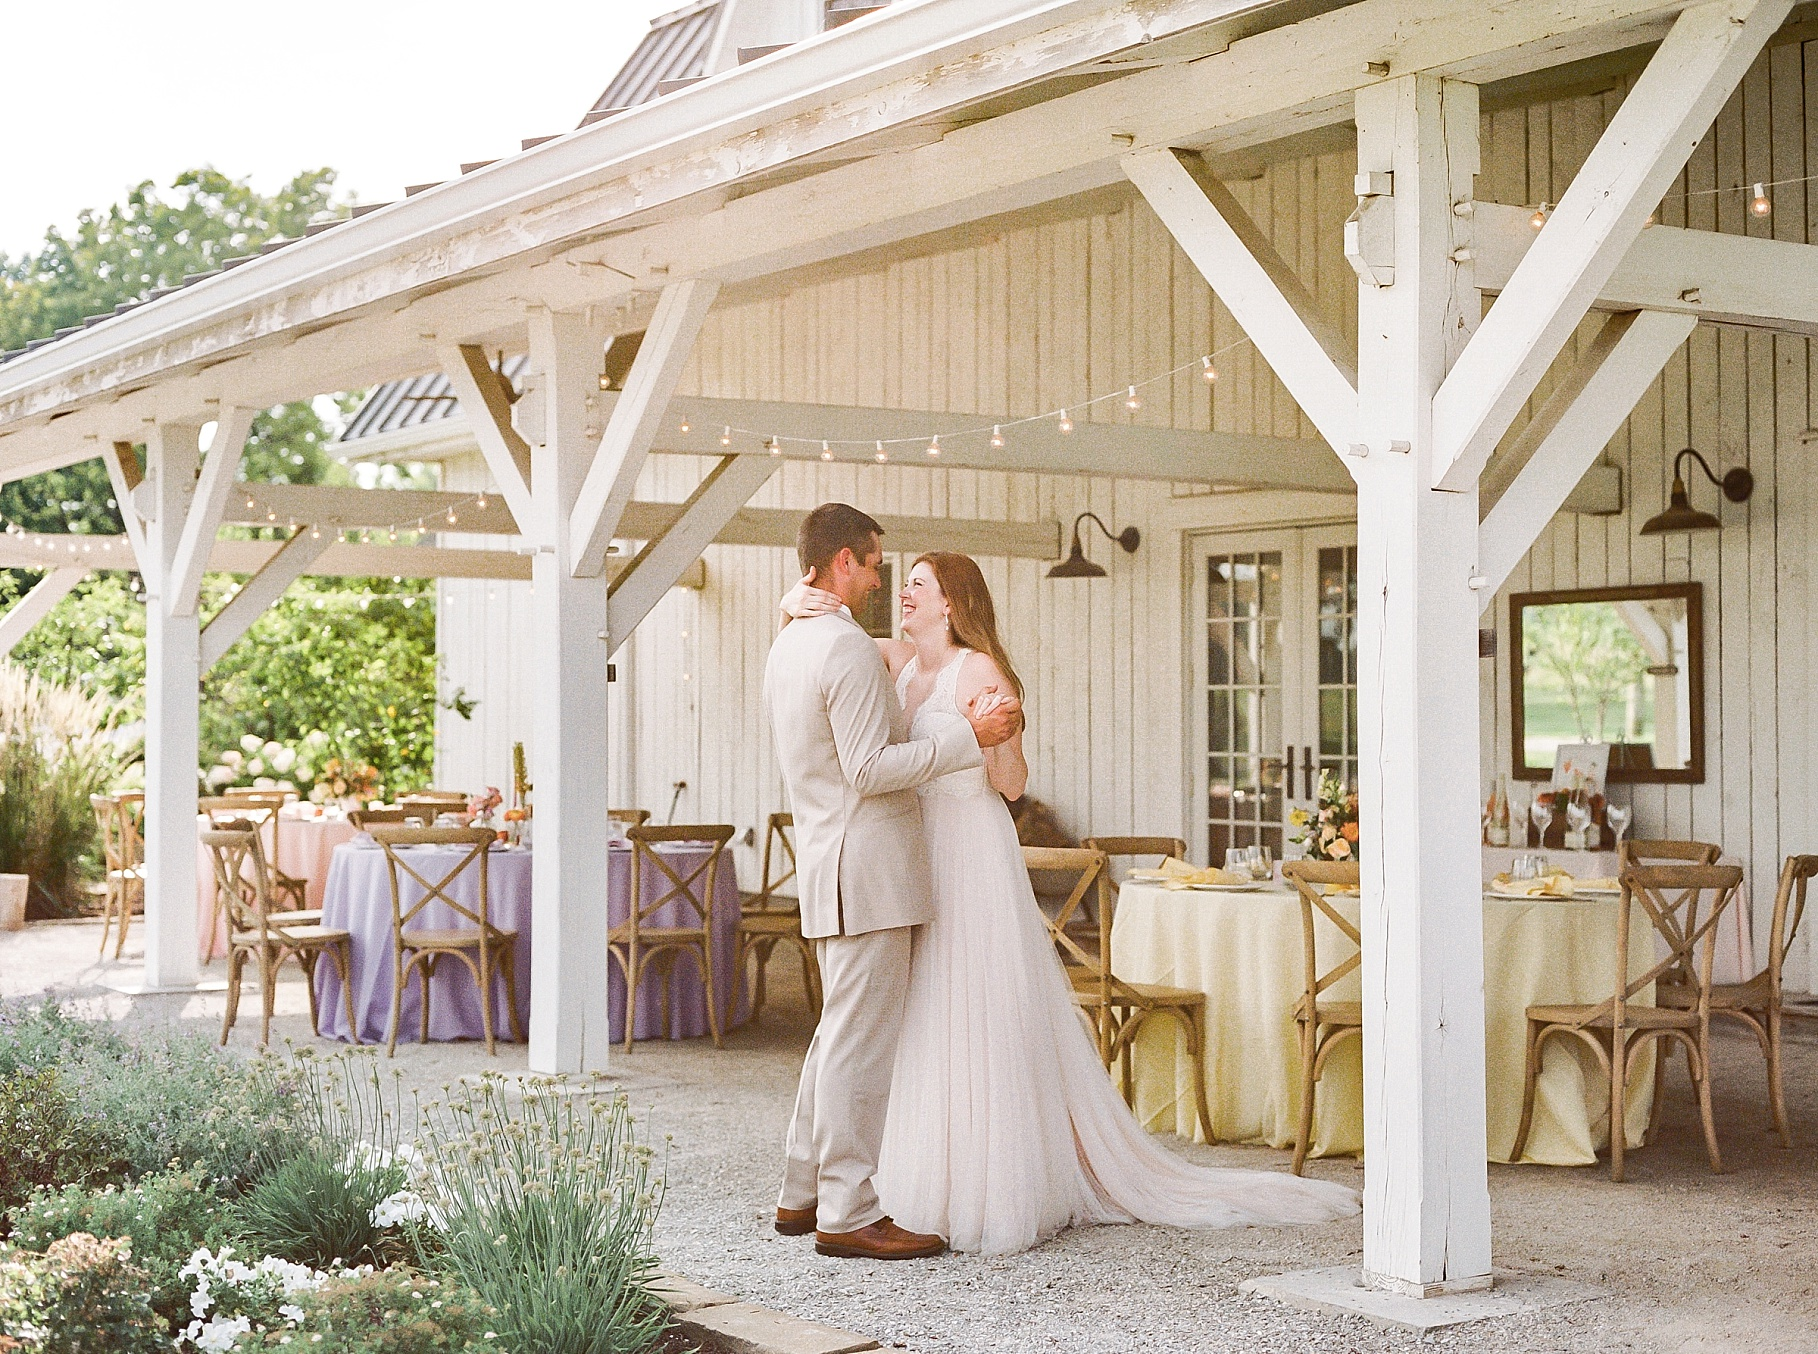 Late Summer Wedding With Pastel Toned Soiree at Blue Bell Farm by Kelsi Kliethermes Photography Best Columbia Missouri Wedding Photographer_0035.jpg